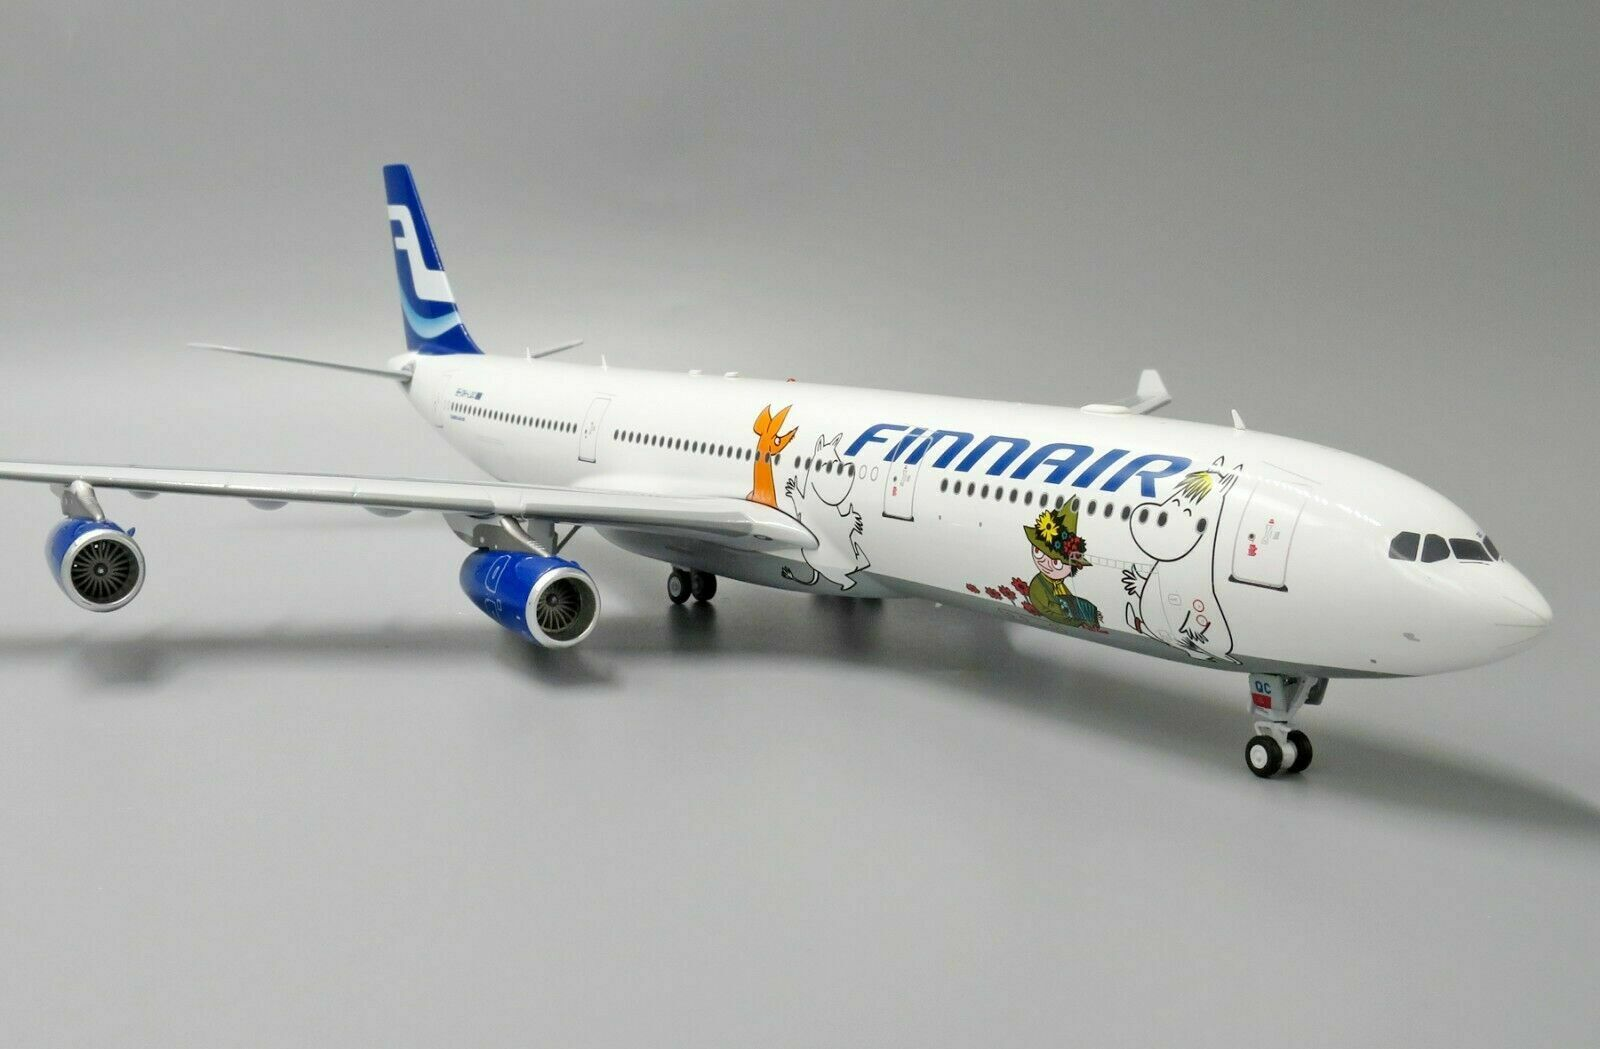 Inflight 200 If343ay002 1 200 Finnair Airbus A340-300 Moomins Oh-Lqc avec Pied